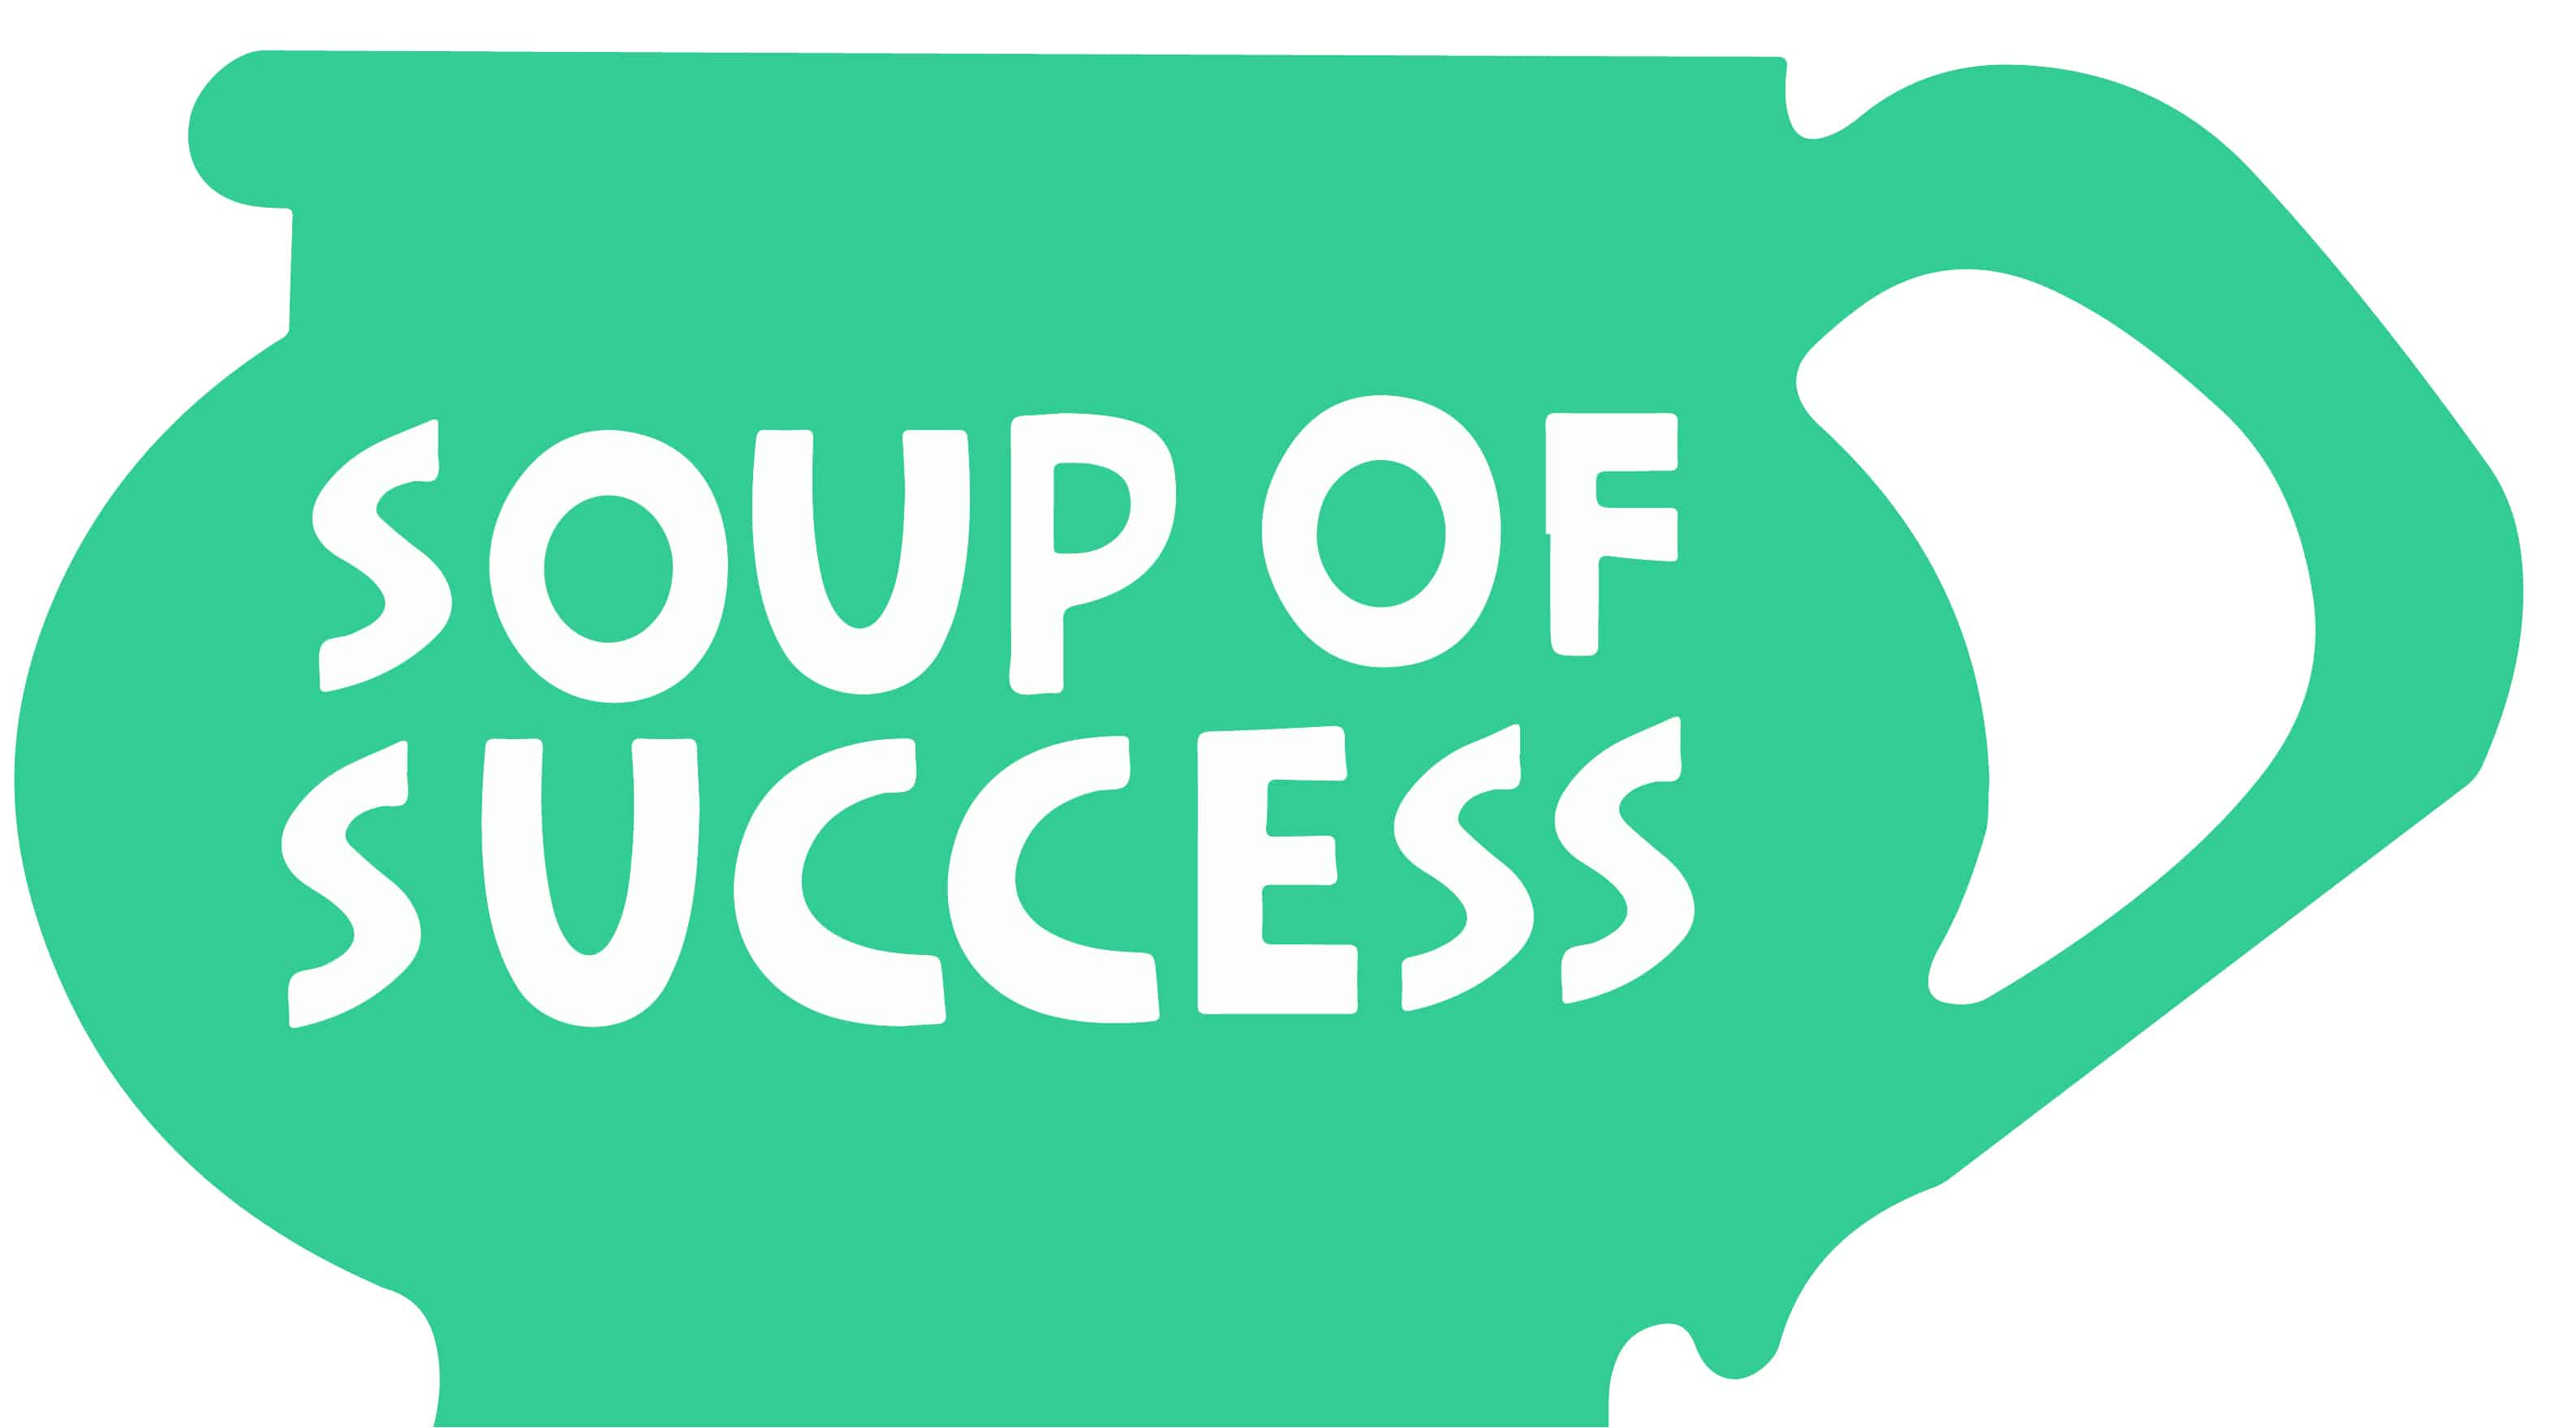 What is Soup Of Success Anyway?